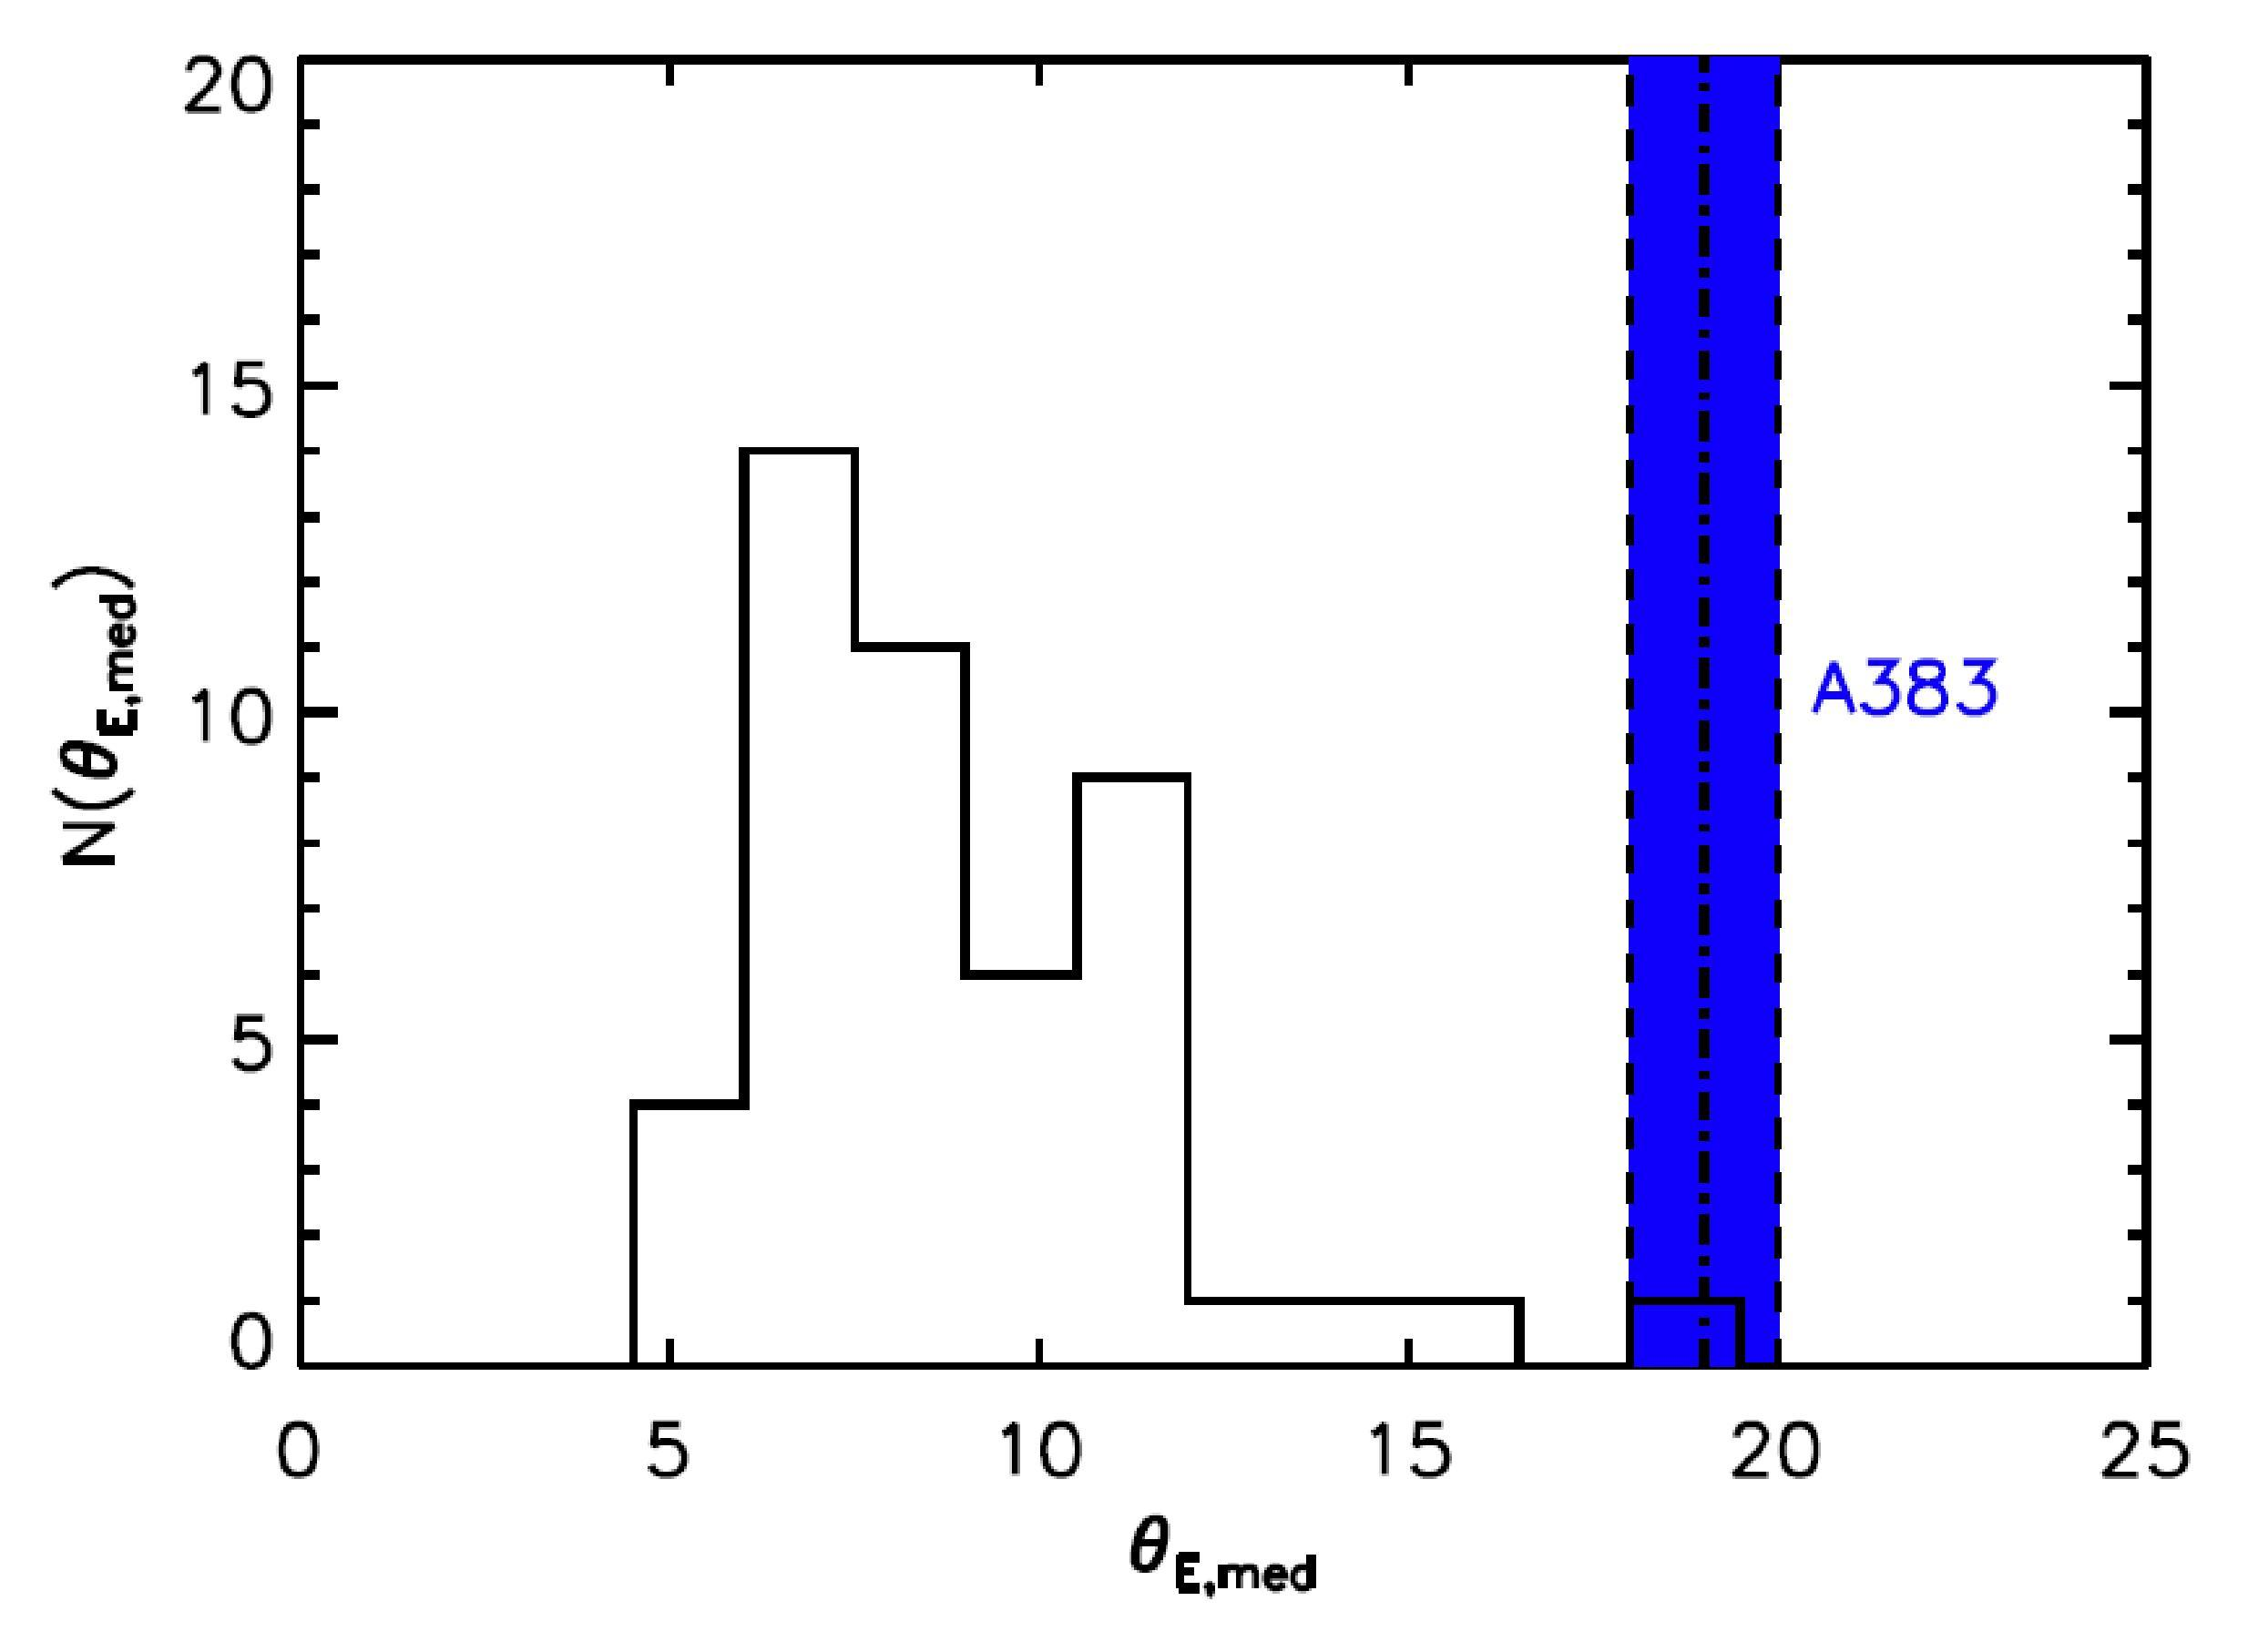 Left panel: CLASH observation of the galaxy cluster Abell 383. Right panel: the black histogram shows the distribution of Einstein radius sizes for clusters with mass similar to that of A383, extracted from the